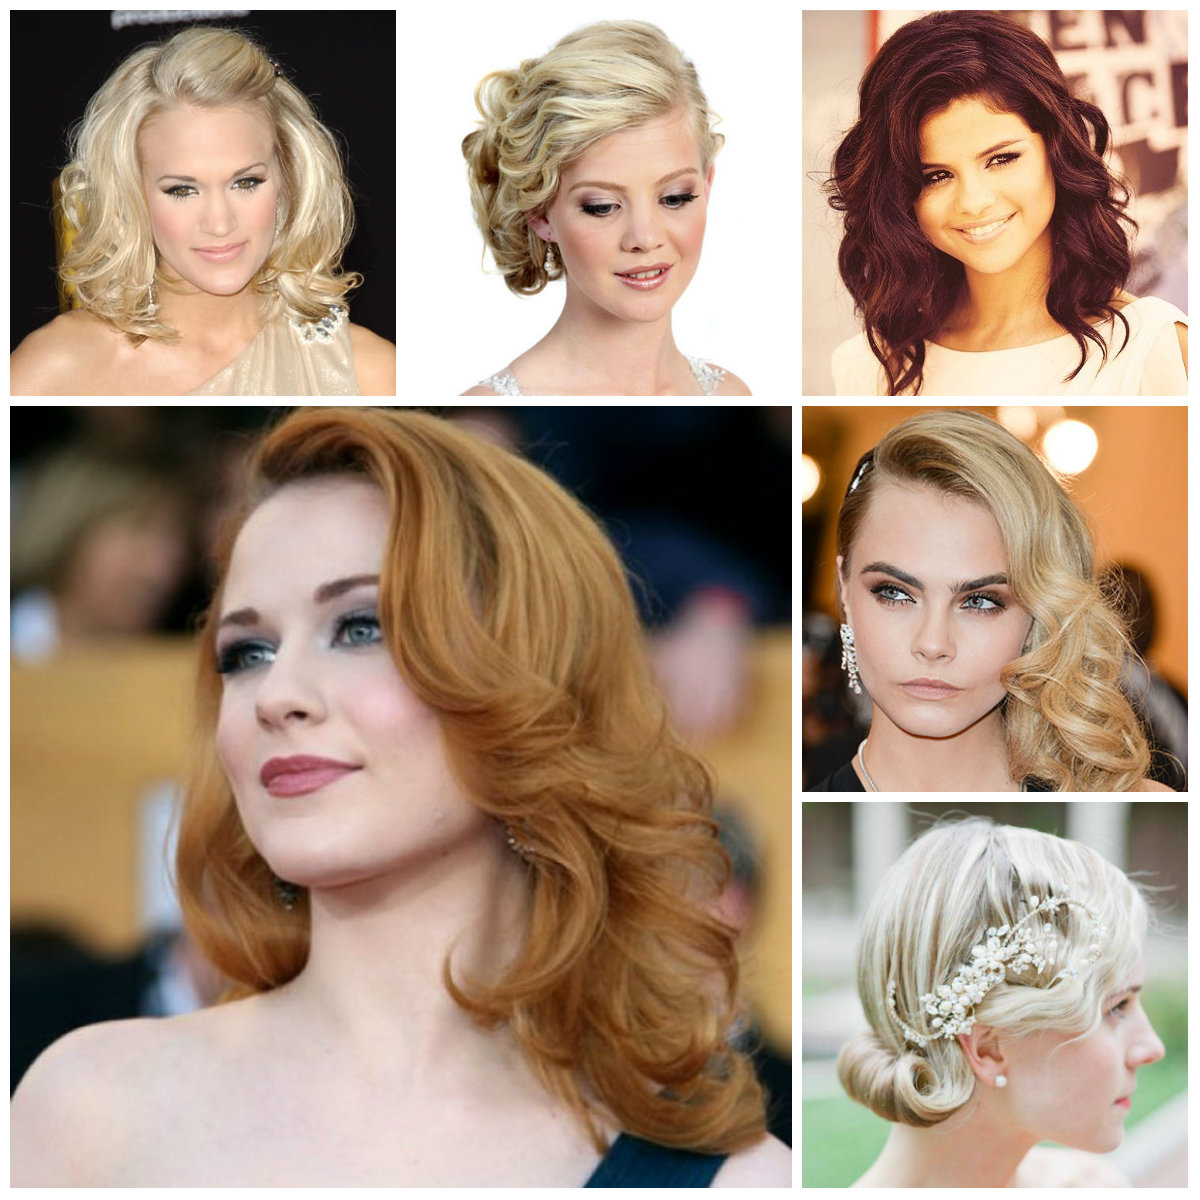 hairstyles 2017 | 2017 haircuts, hairstyles and hair colors